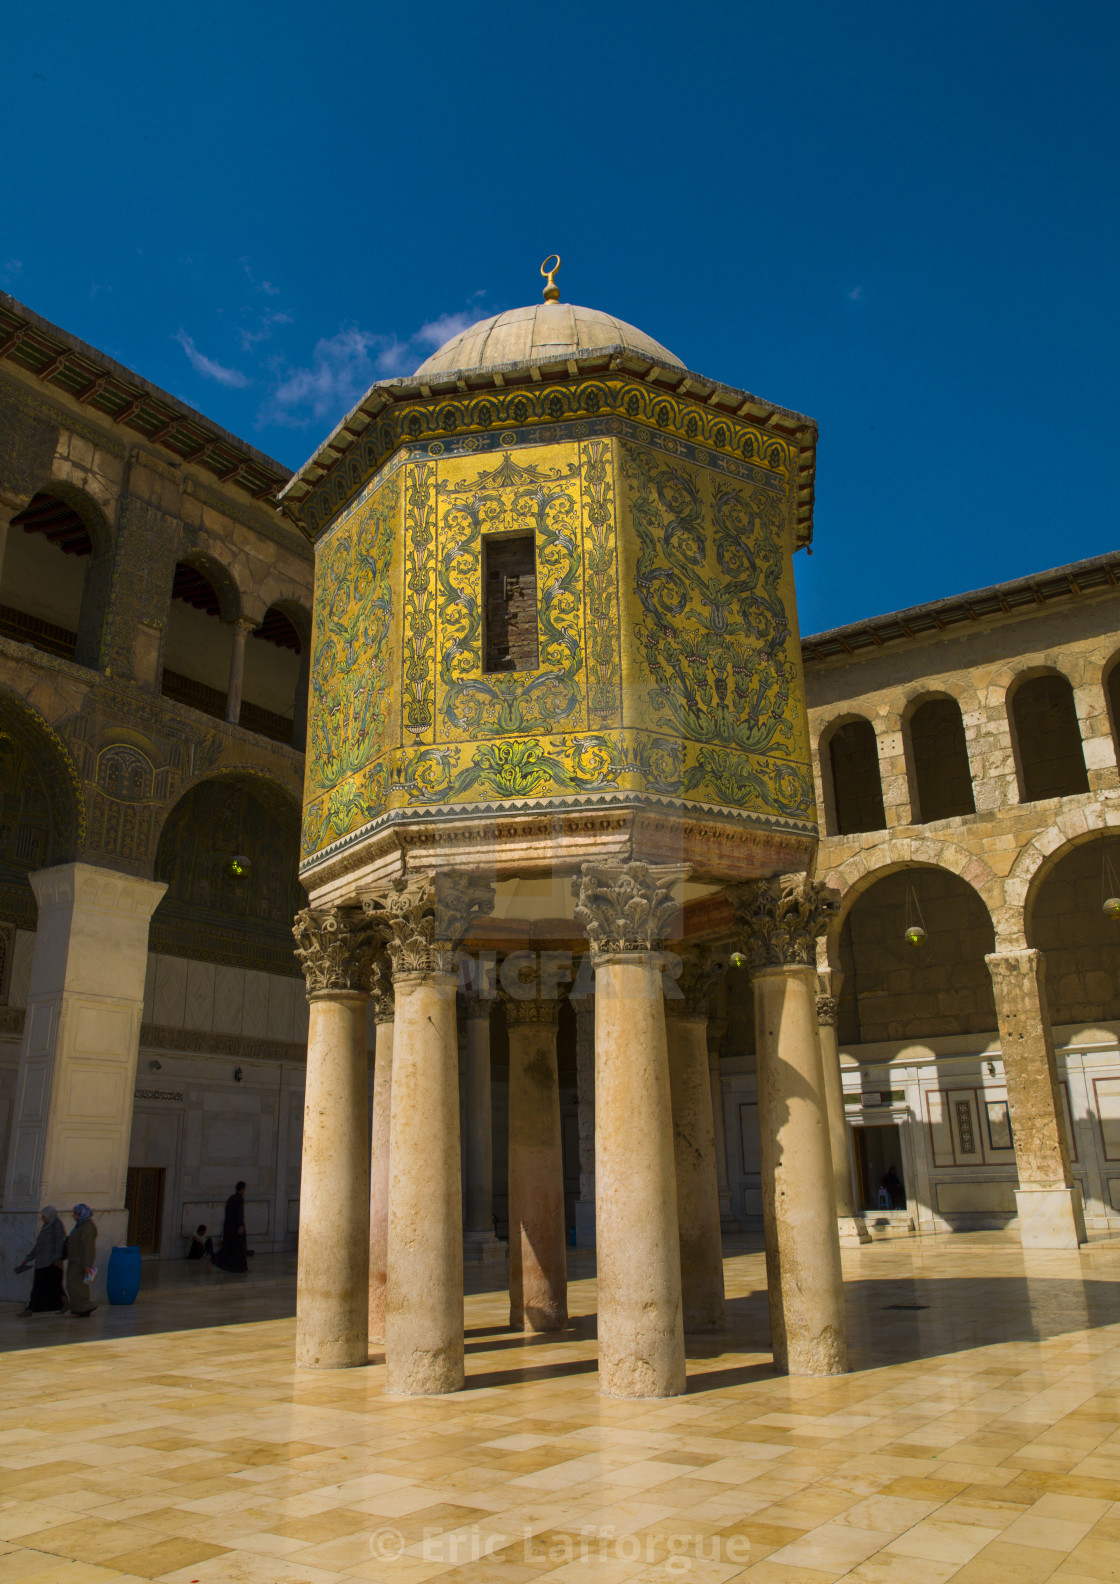 The Dome of the Treasury In Umayyad Mosque courtyard